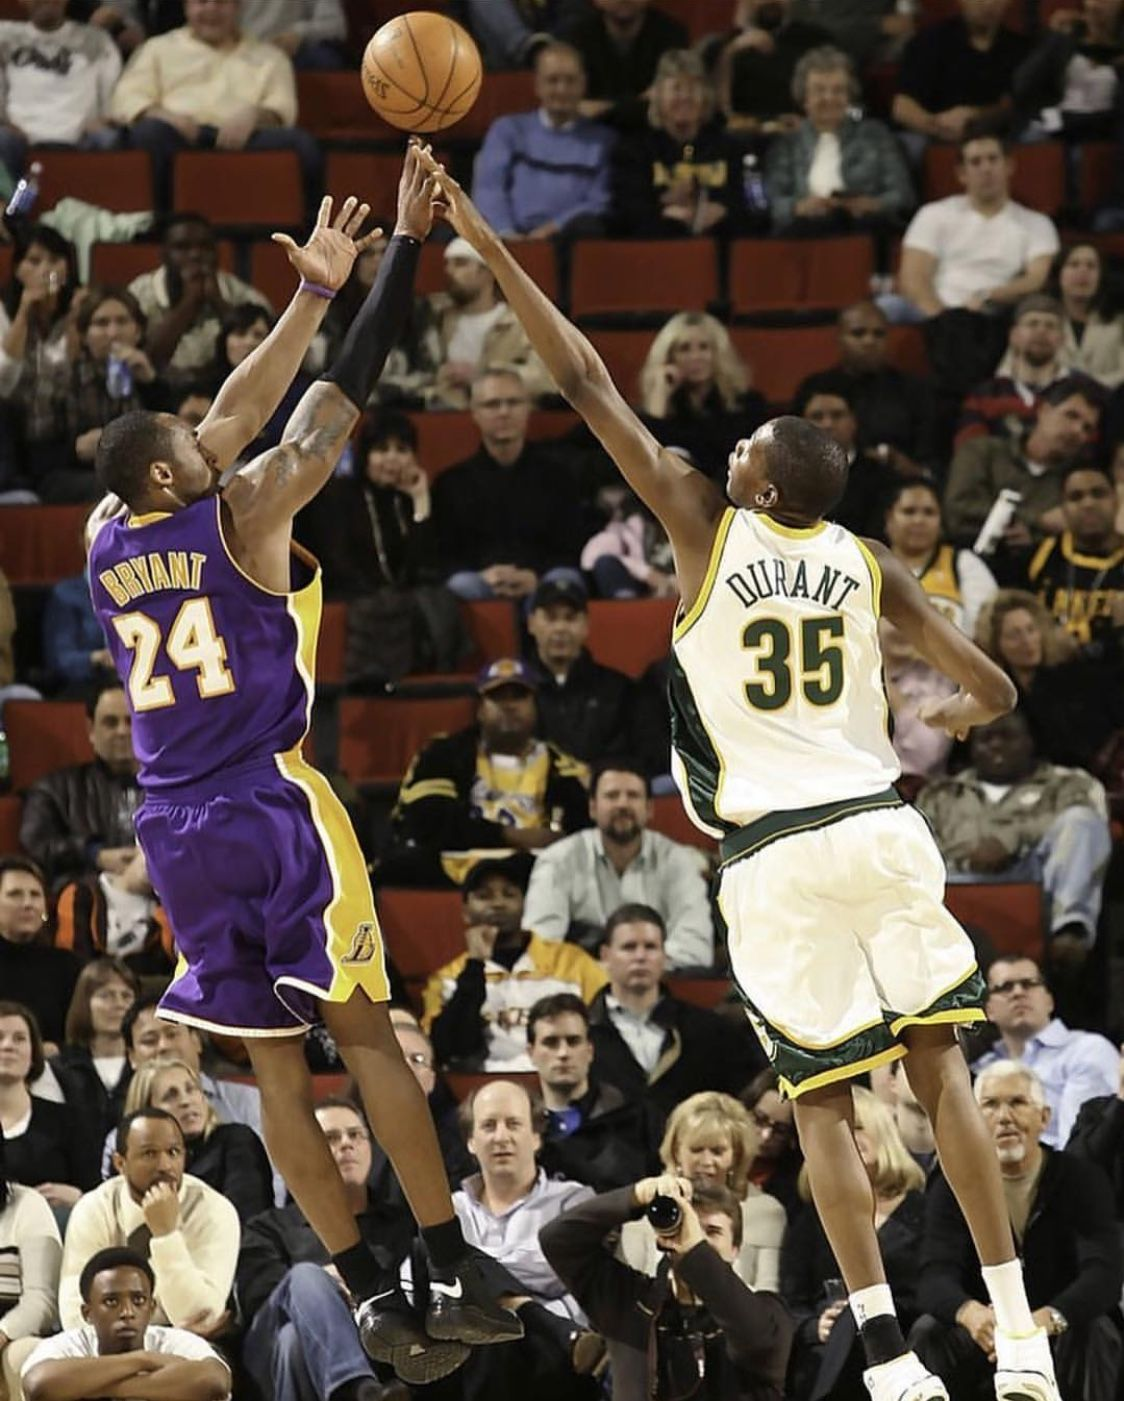 b43d6a3e5713 ... Los Angeles Lakers v Seattle SuperSonics. Kobe Bryant pulling up on  rookie Kevin Durant and the former Seattle SuperSonics